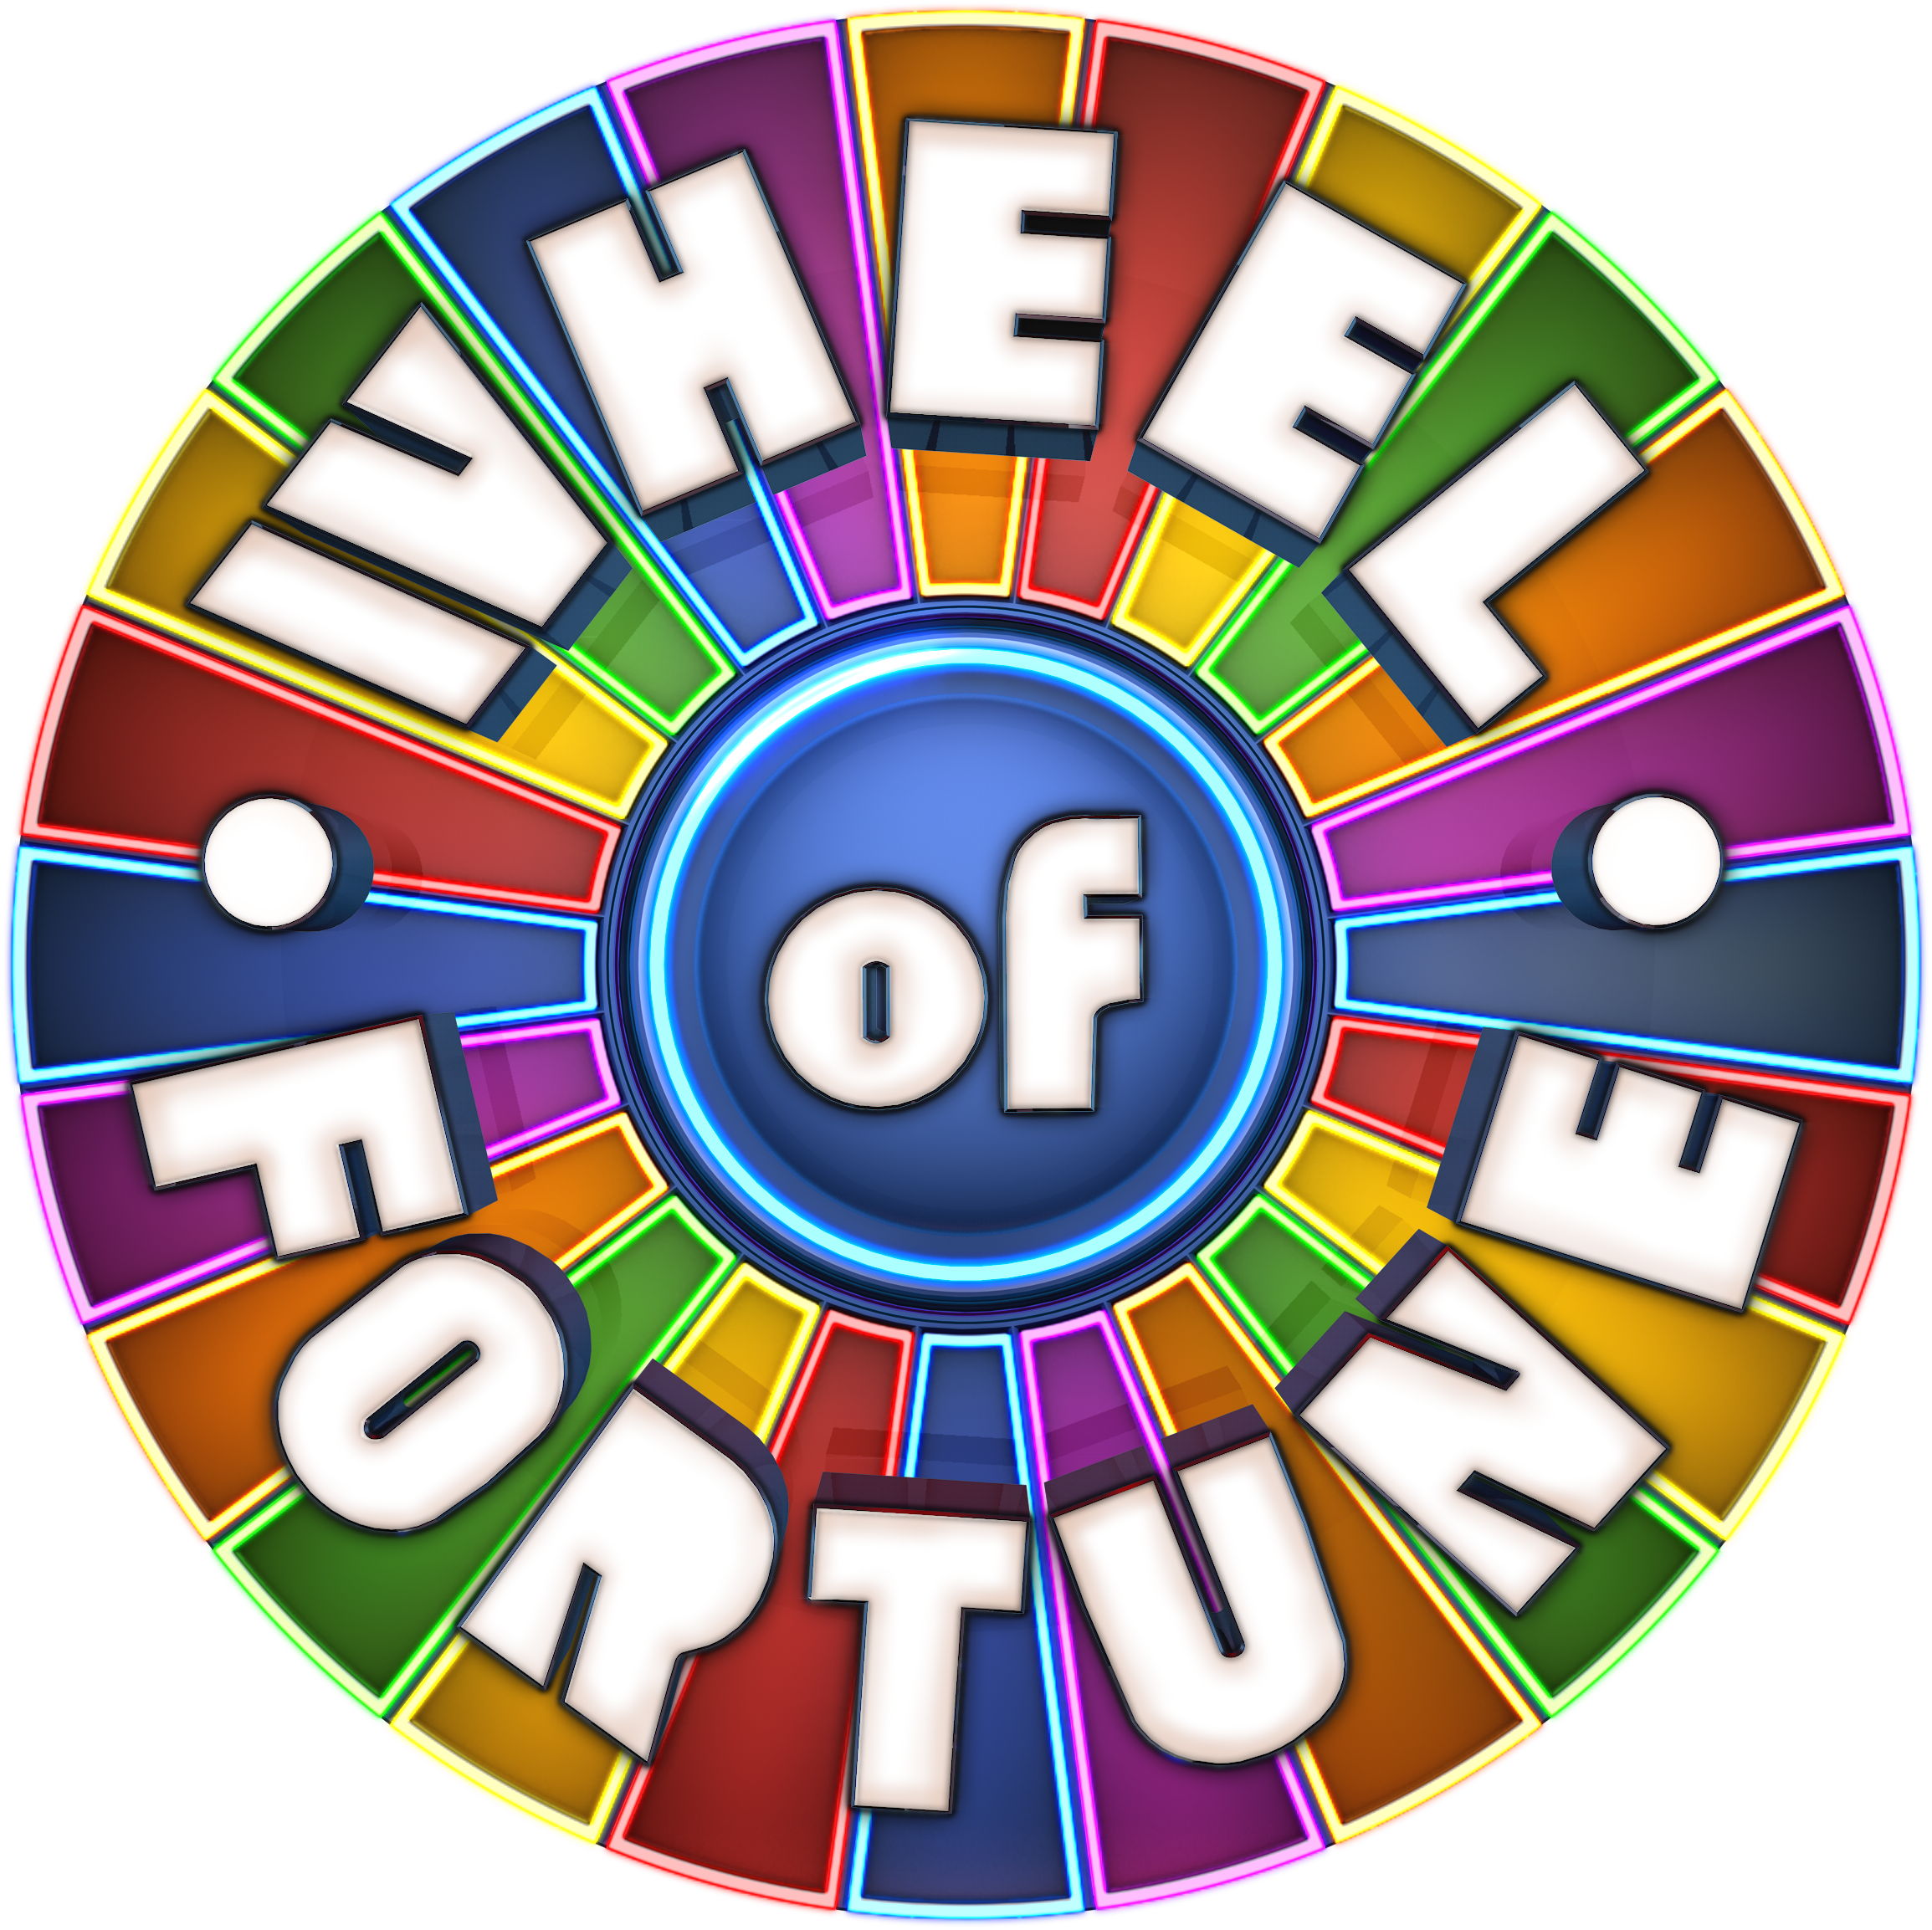 play wheel of fortune slot machine online cassino games